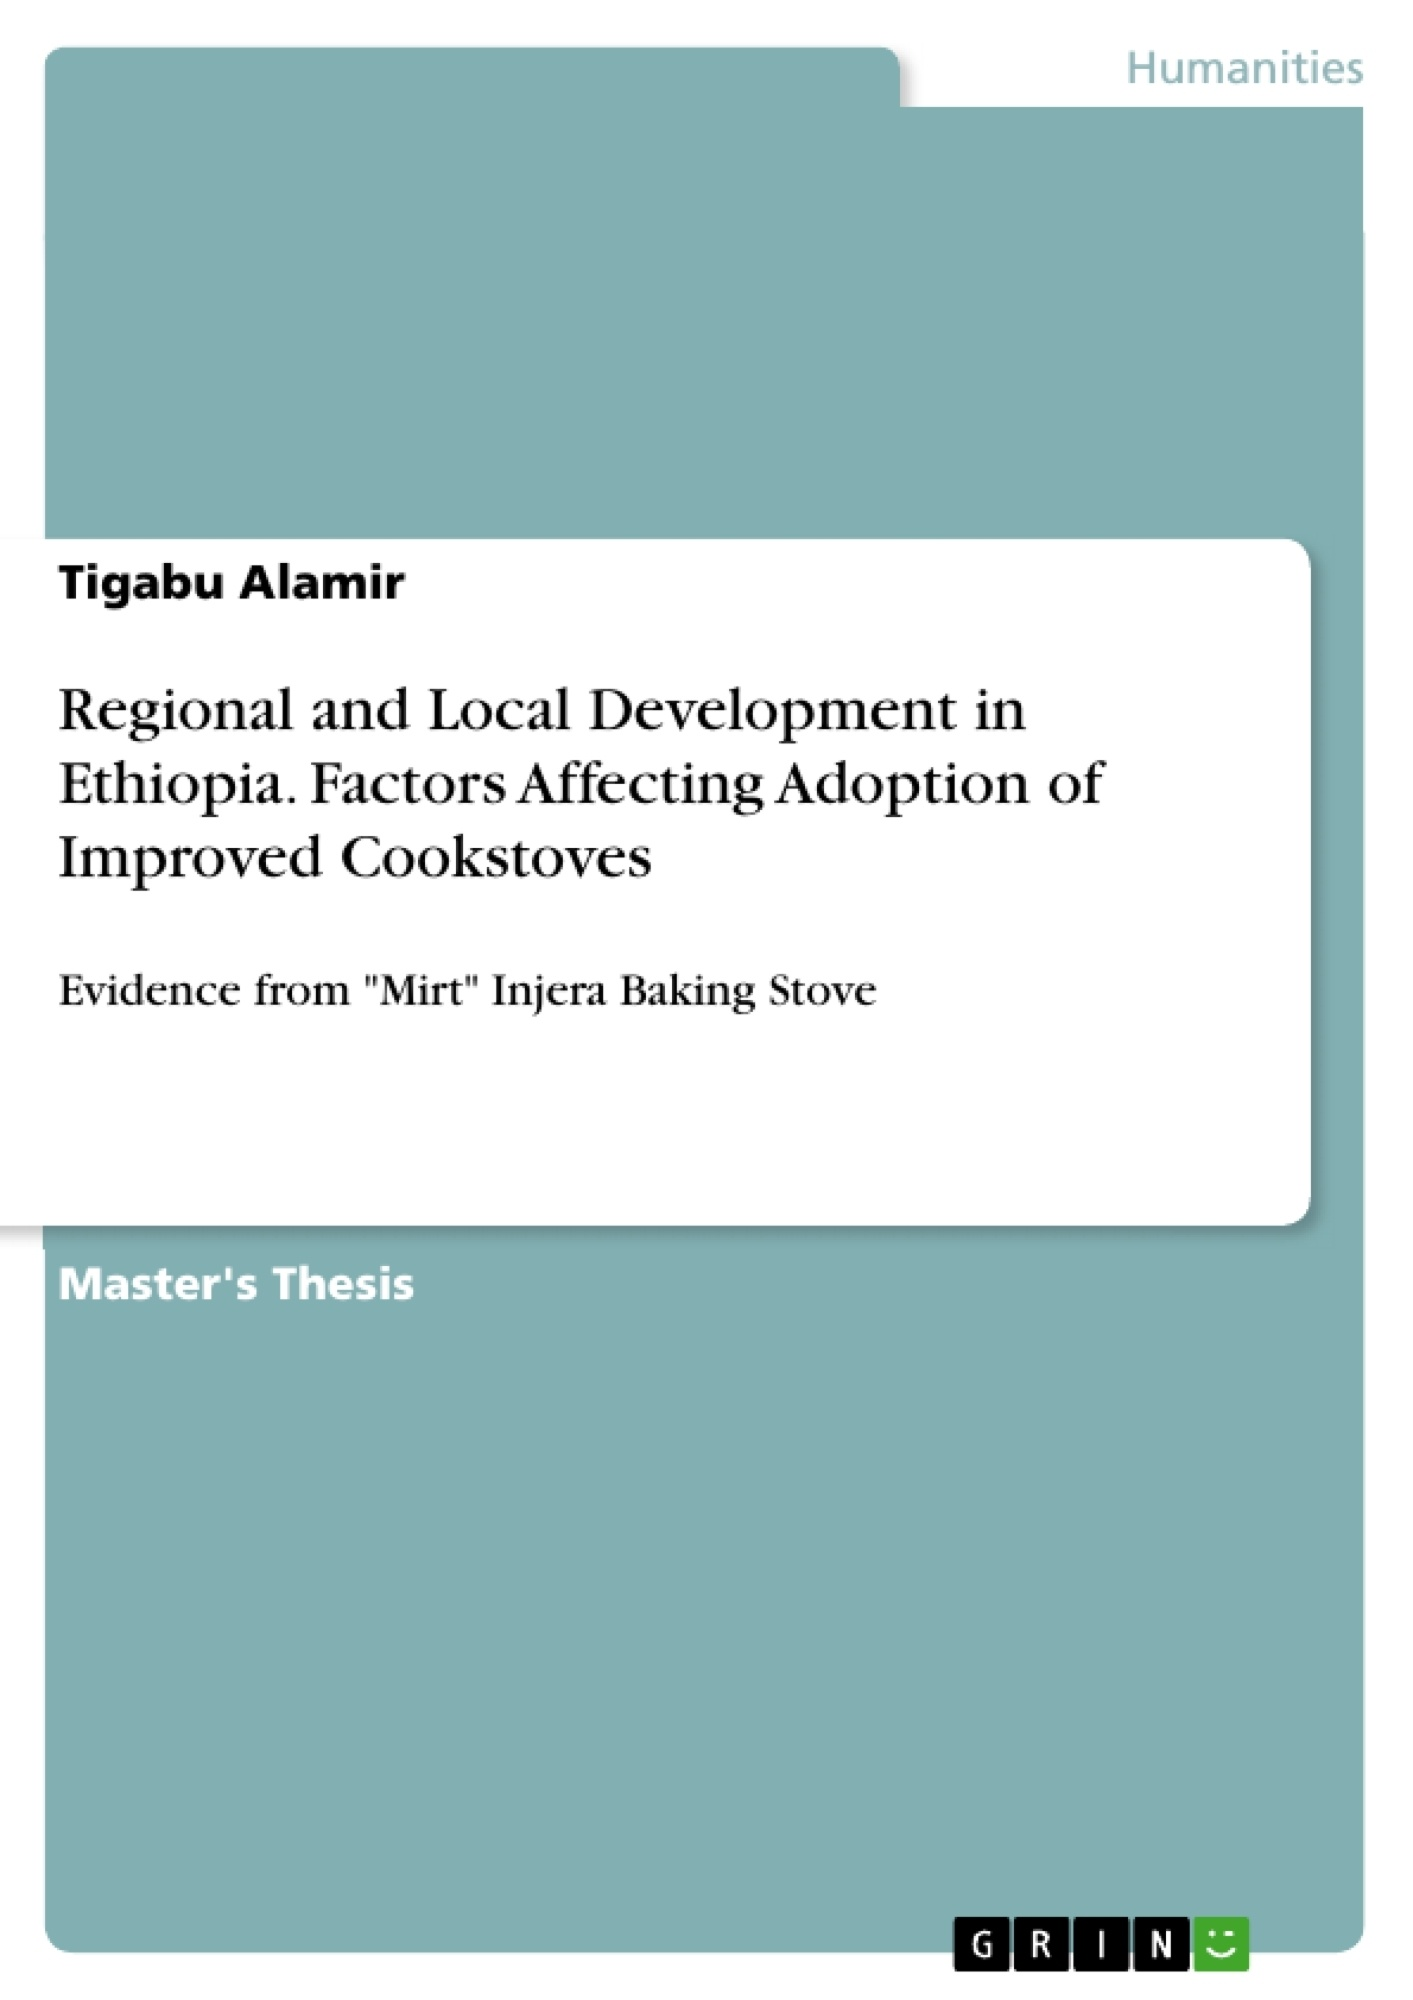 GRIN - Regional and Local Development in Ethiopia  Factors Affecting  Adoption of Improved Cookstoves